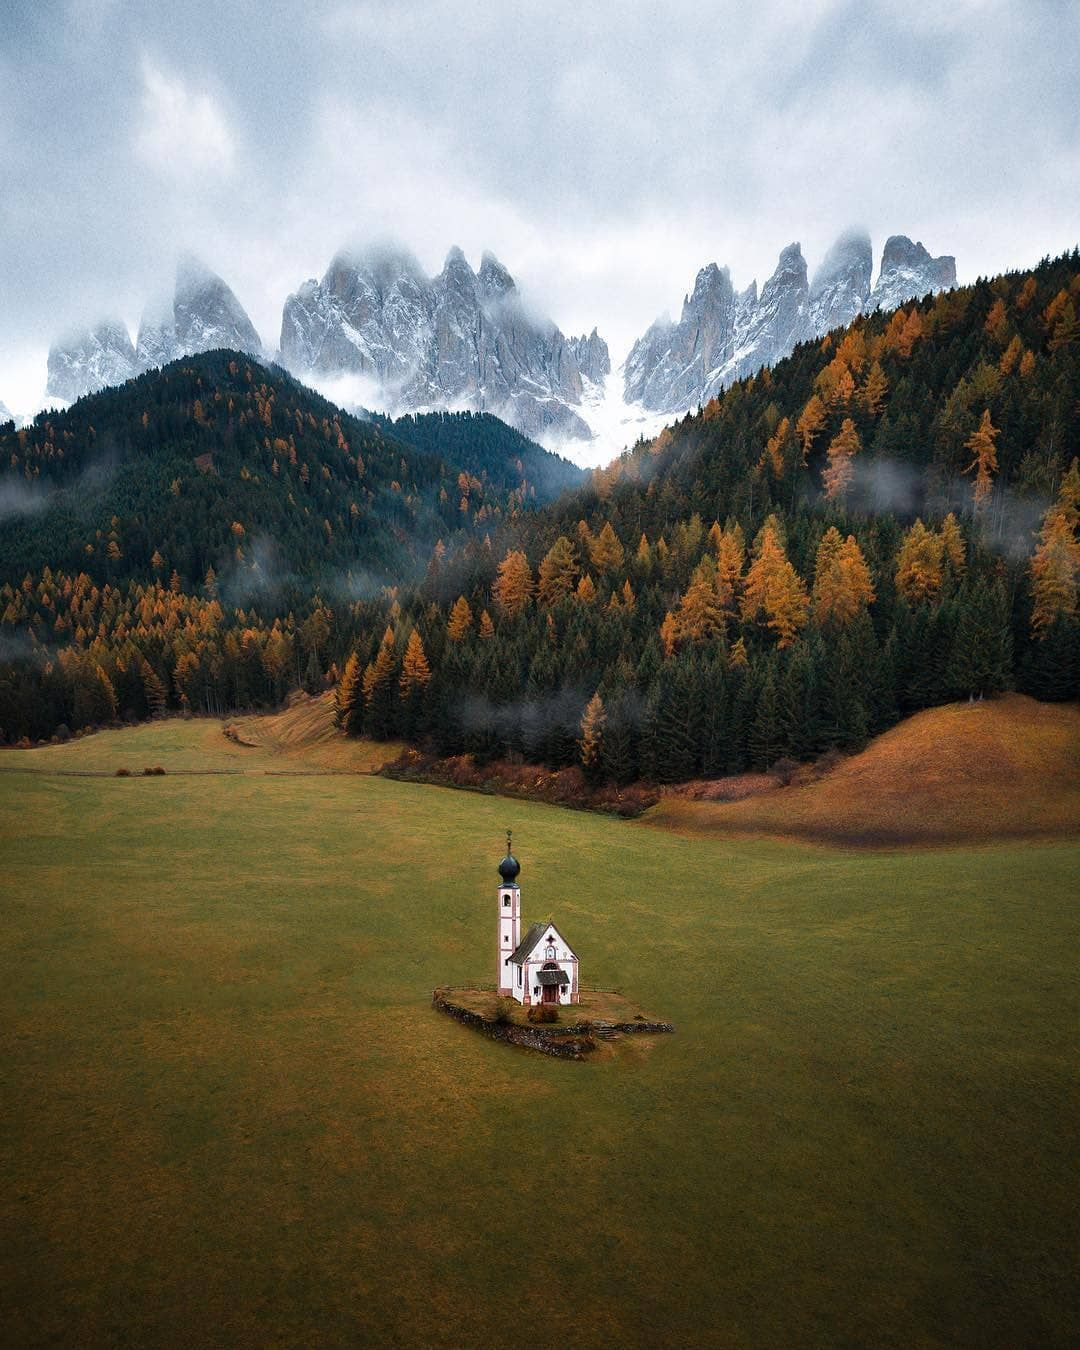 """Planet Earth 🌎 on Instagram: """"Photo by @conormccann Val di Funes 🇮🇹 . #Italy #Nature #Place #Planet #Travel #TLpicks #Church #Worldshotz #Superhubs #Landscapes…"""""""